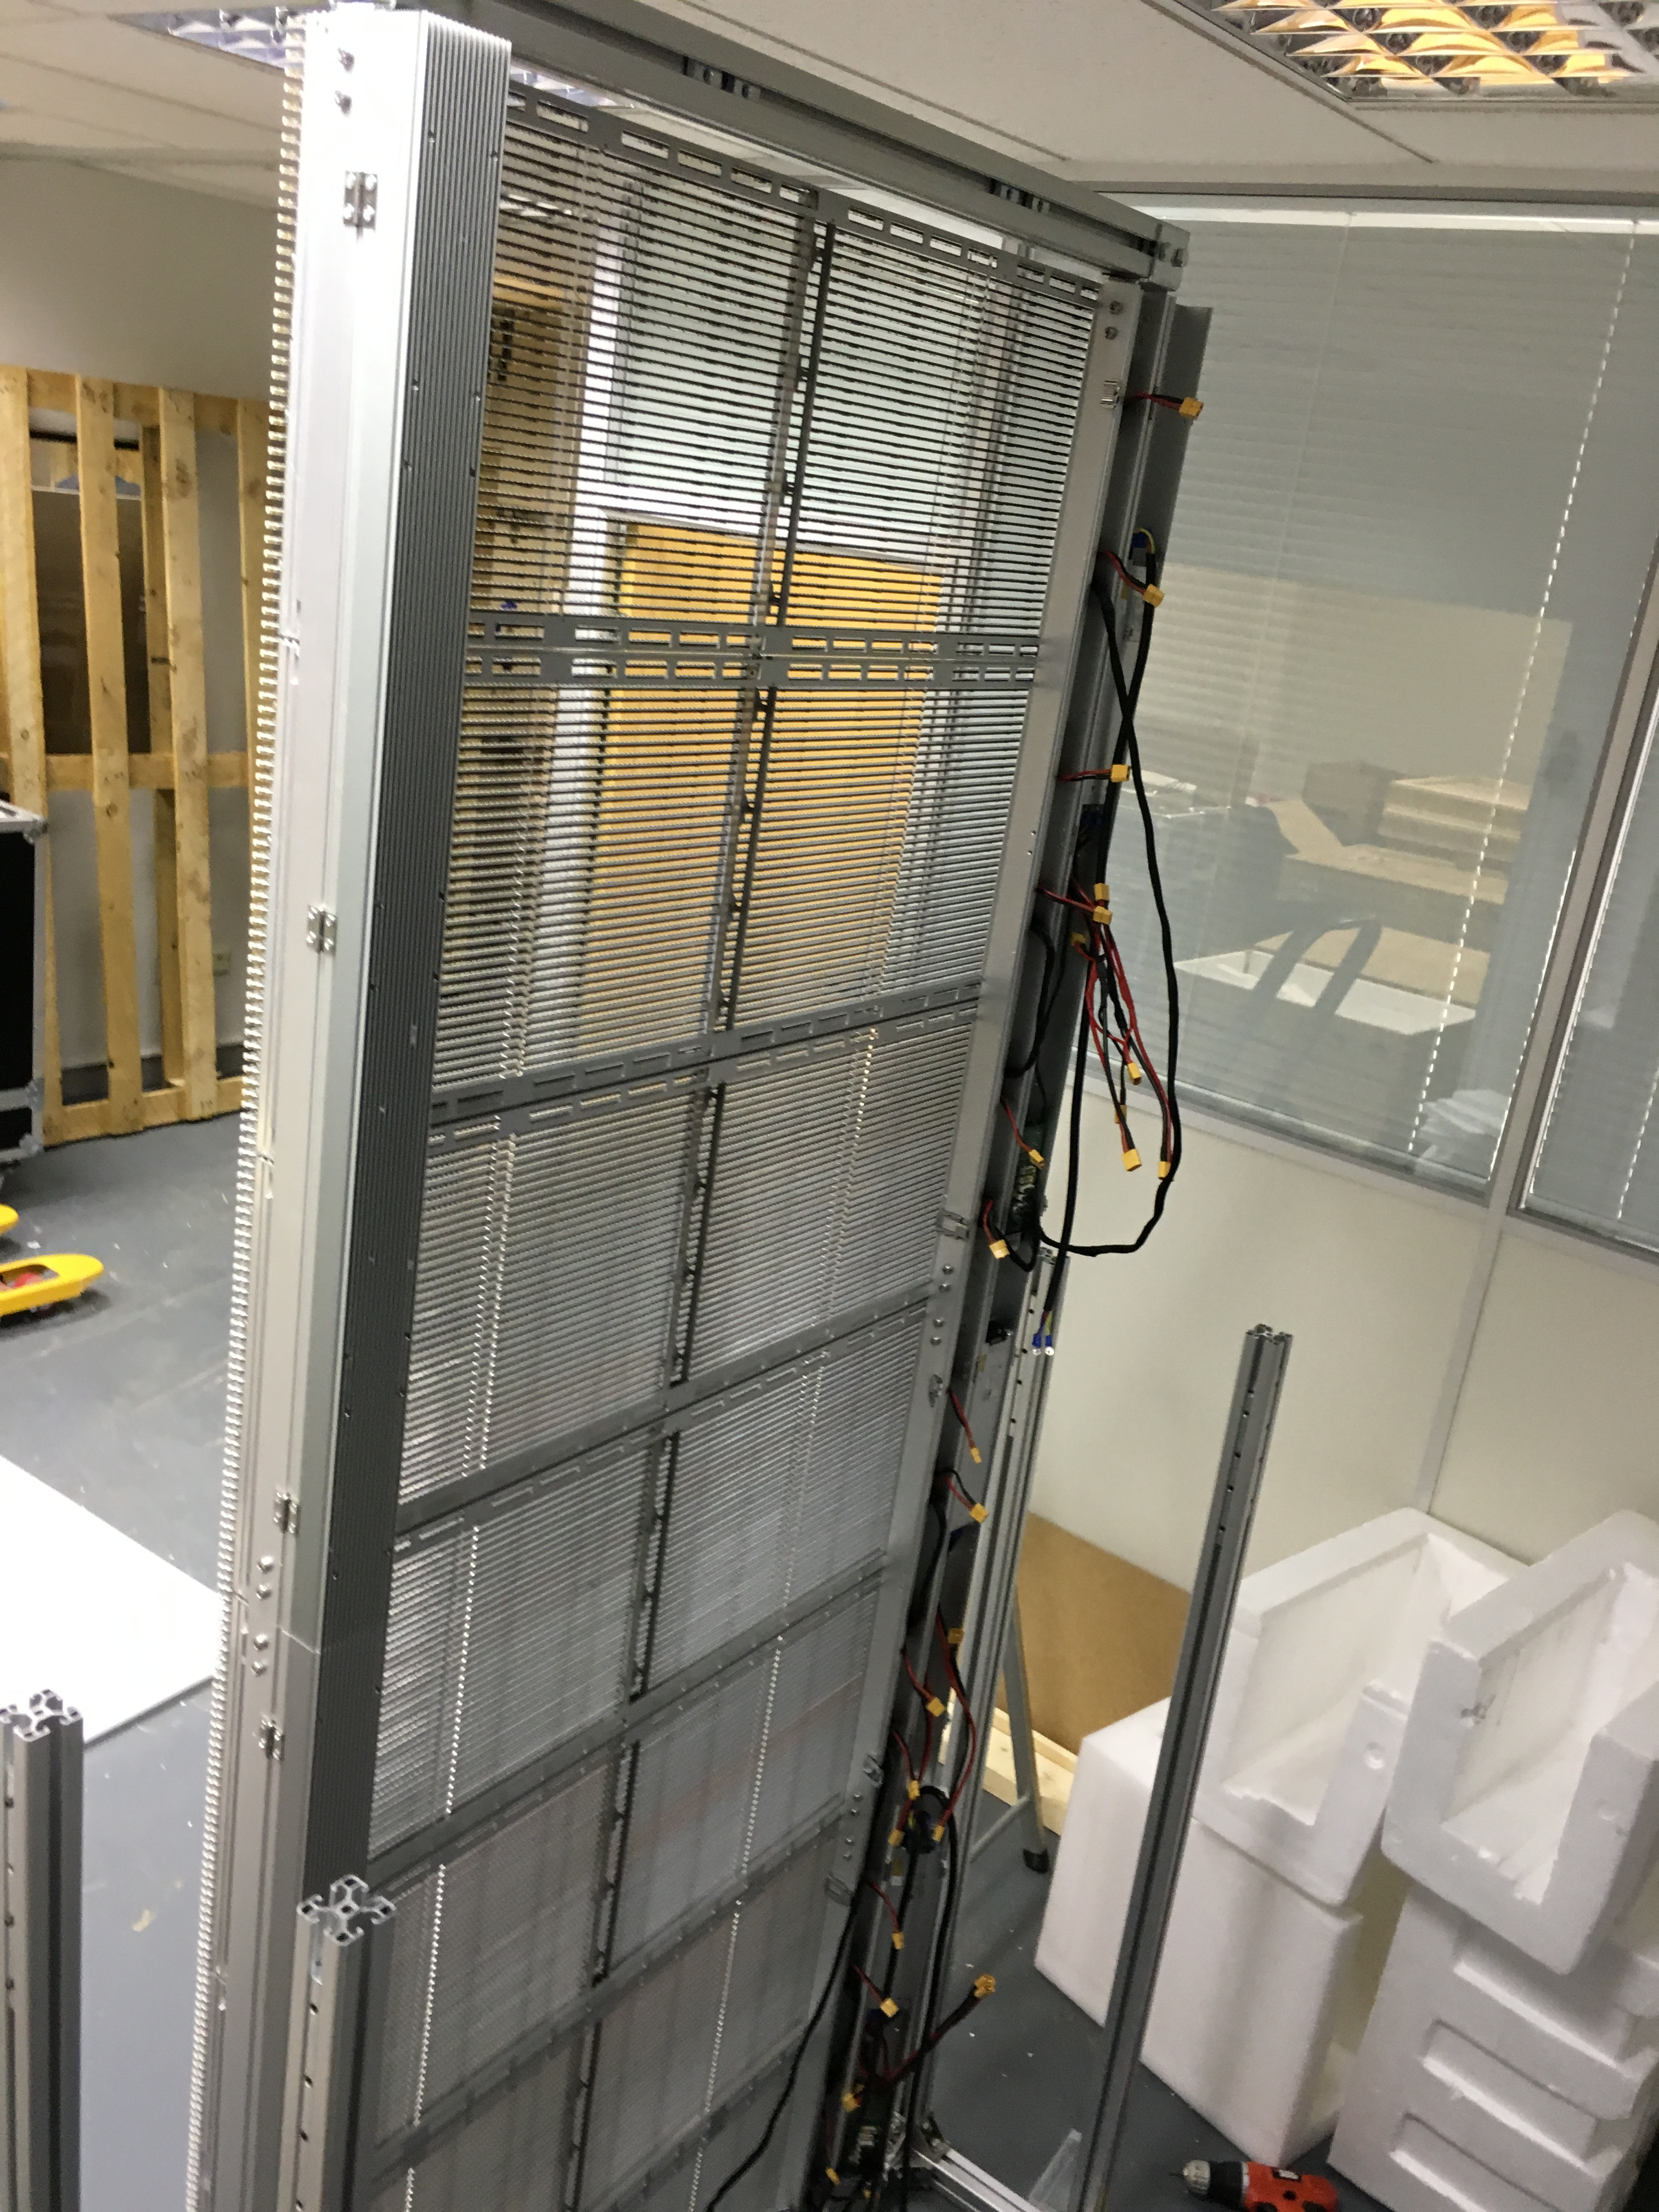 TGlass Display Tested Before being Shipped to Denmark